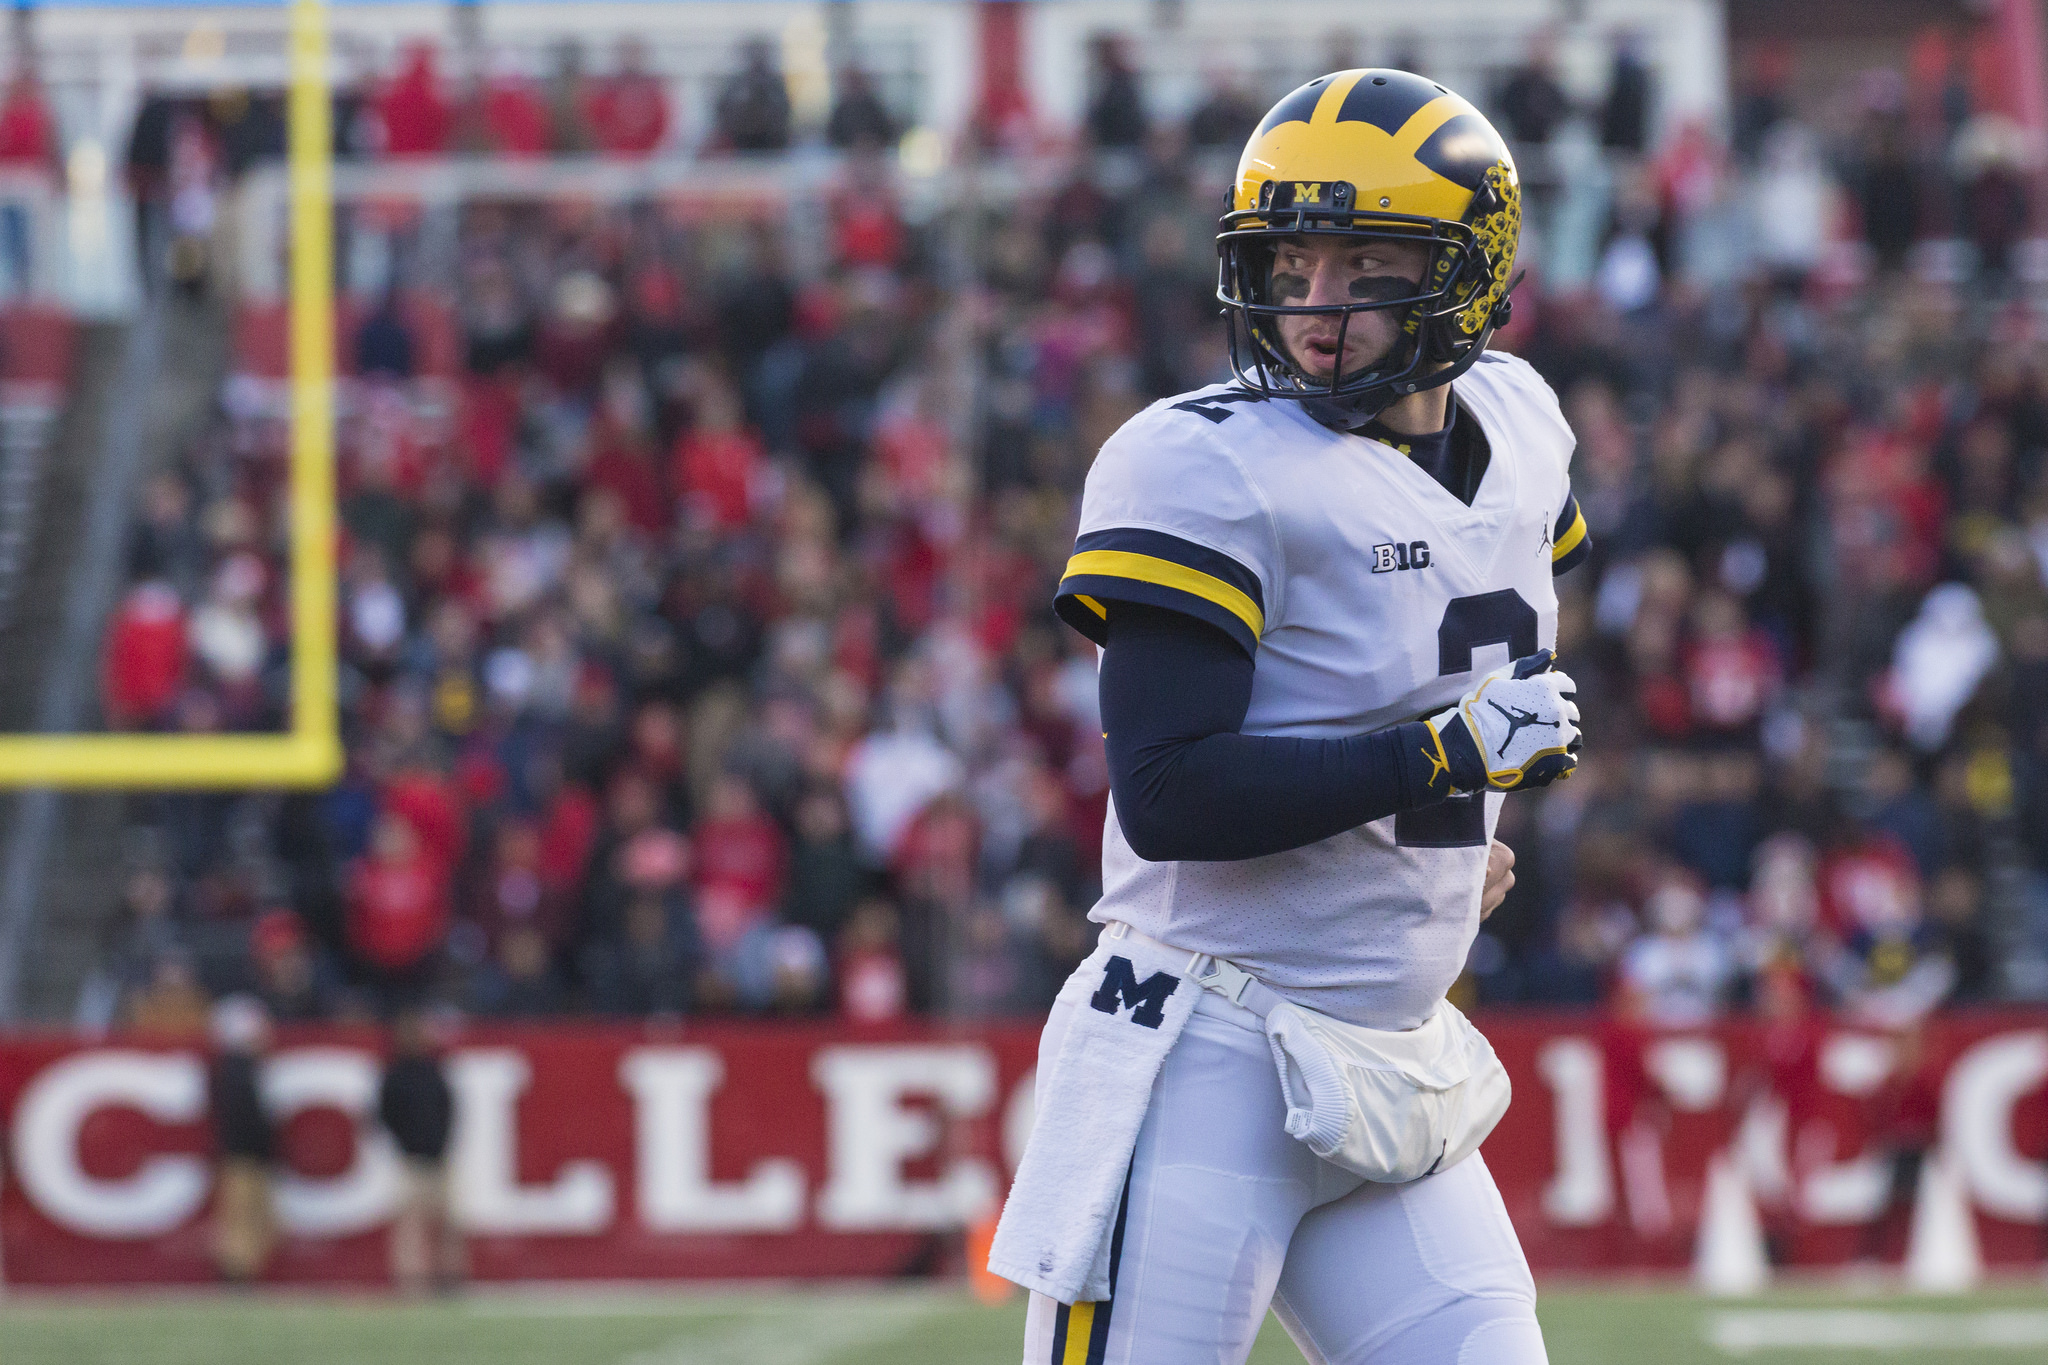 Shea Patterson and Jim Harbaugh have worked well this season